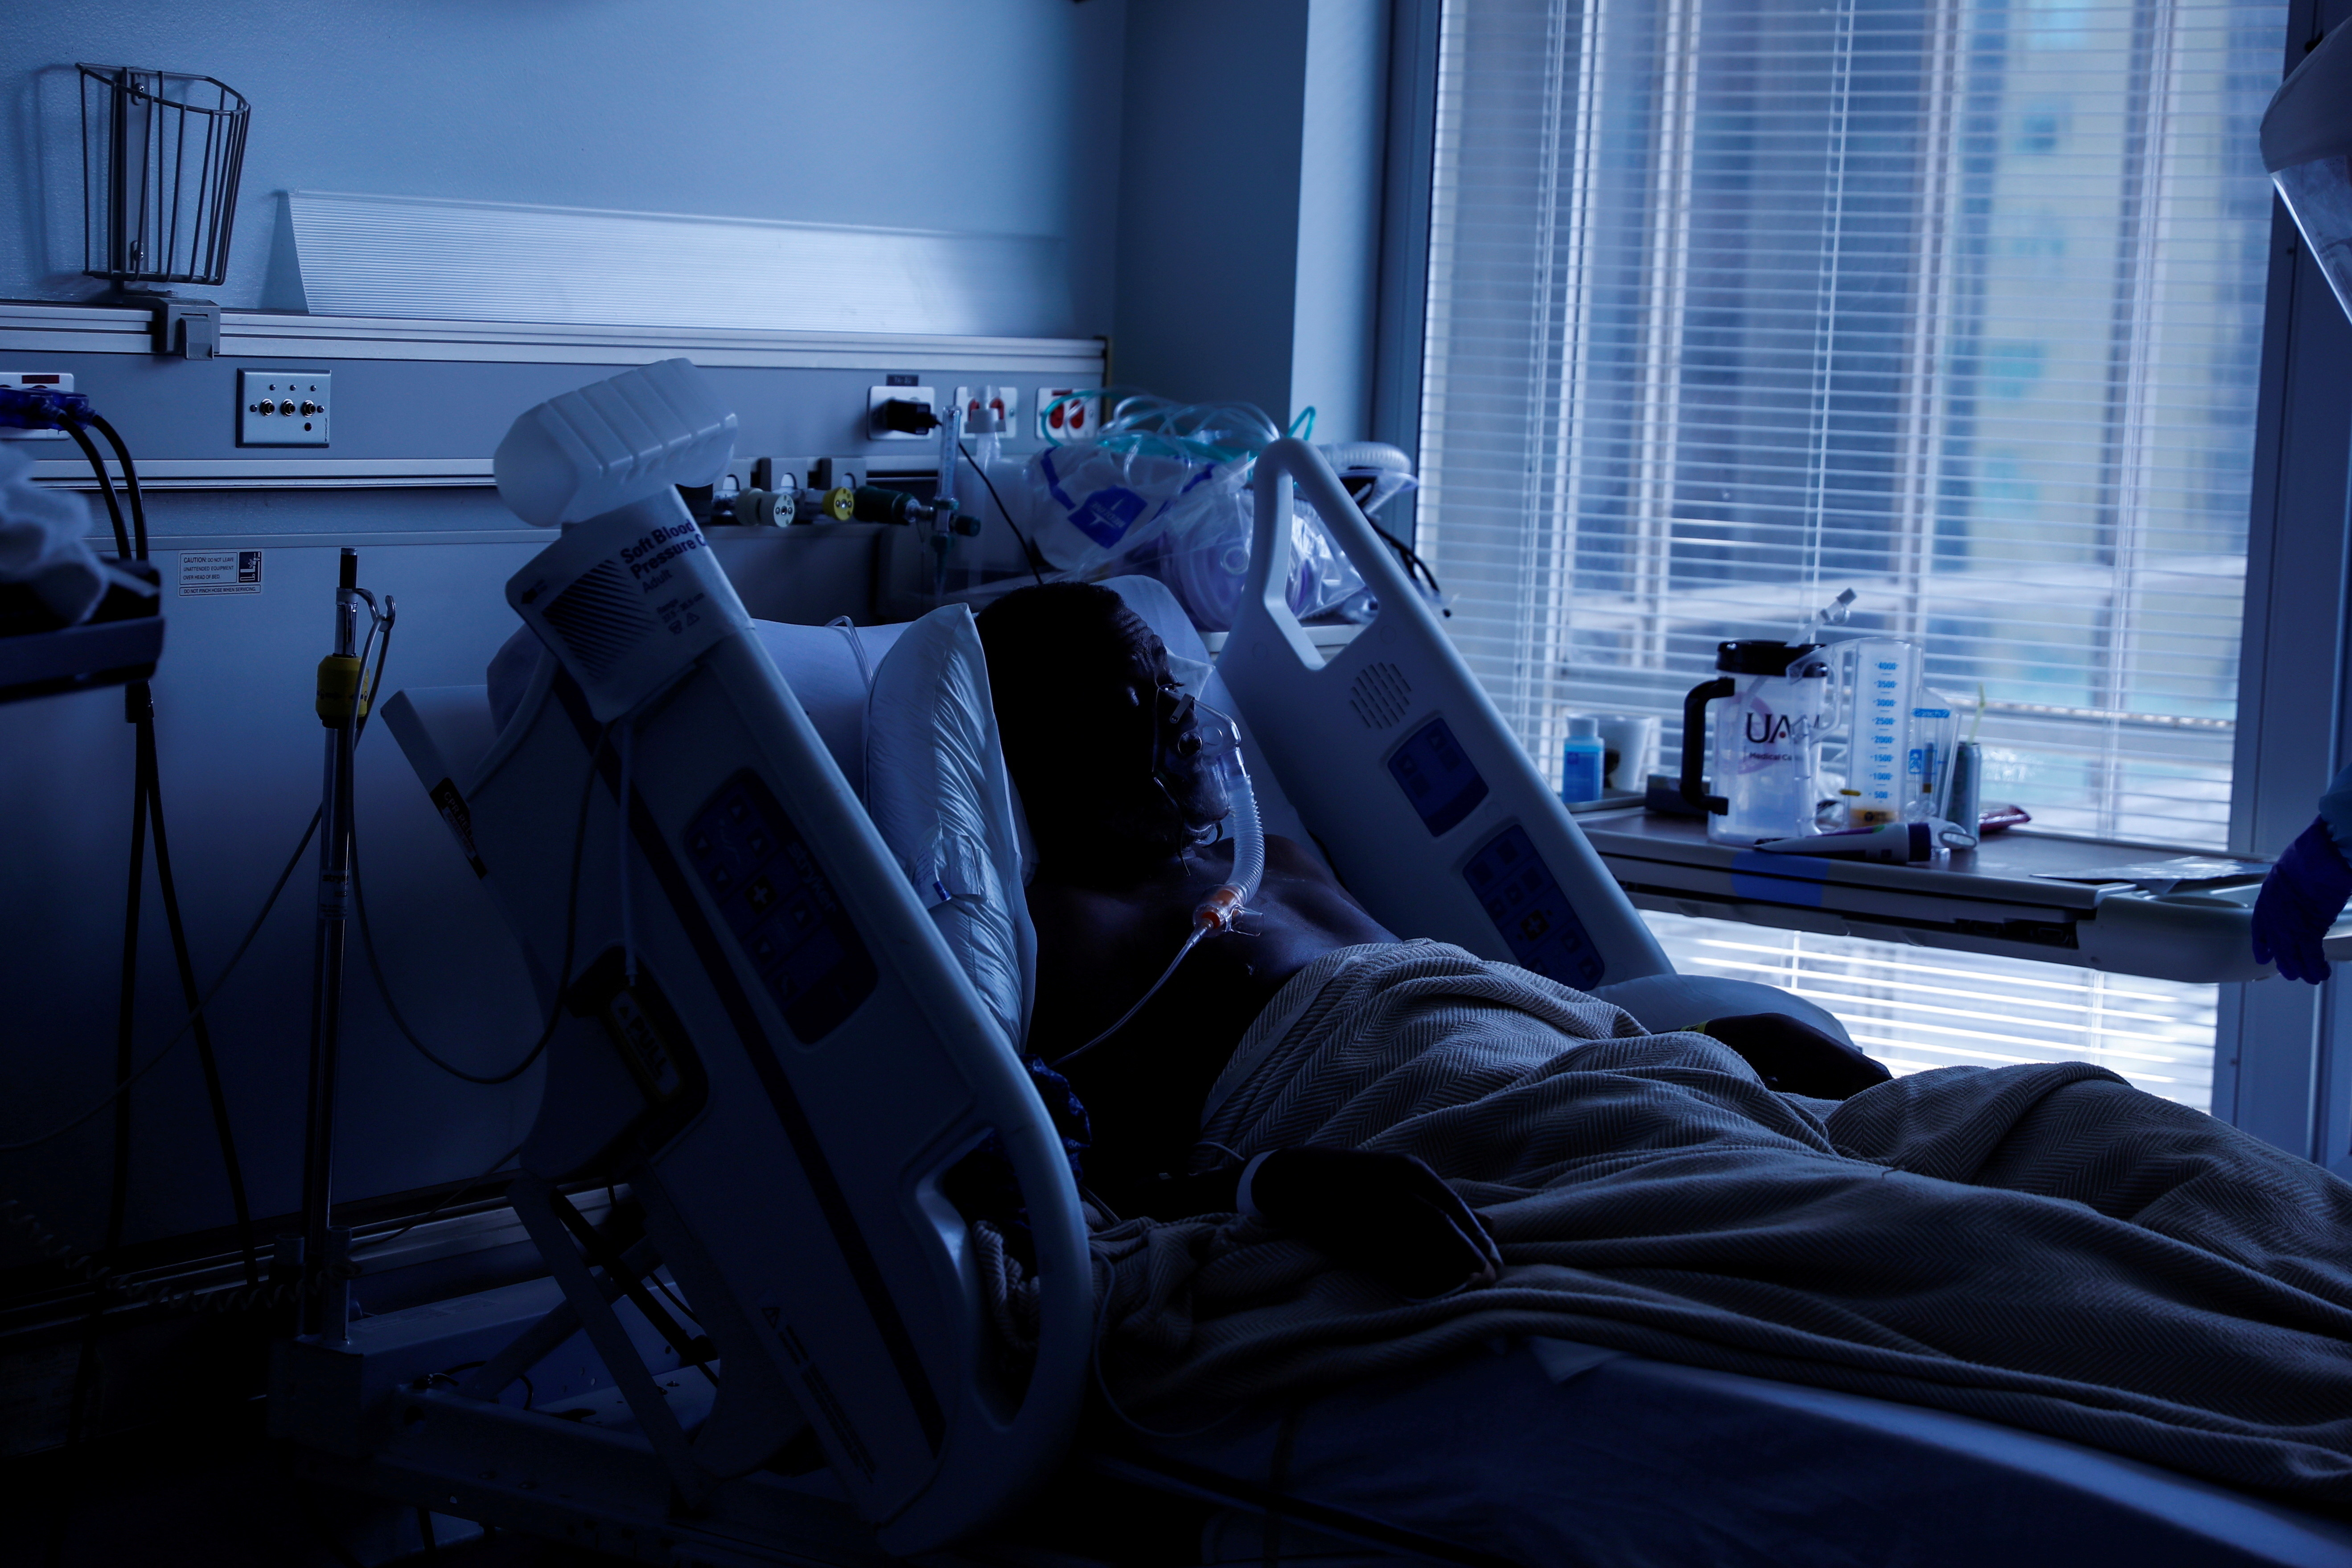 Boris Bryant, a (COVID-19) positive patient, lays in his isolation room on the Covid-19 unit at University of Arkansas for Medical Sciences (UAMS) in Little Rock, Arkansas, U.S., August 16, 2021. REUTERS/Shannon Stapleton     TPX IMAGES OF THE DAY - RC2E6P9WSD2D